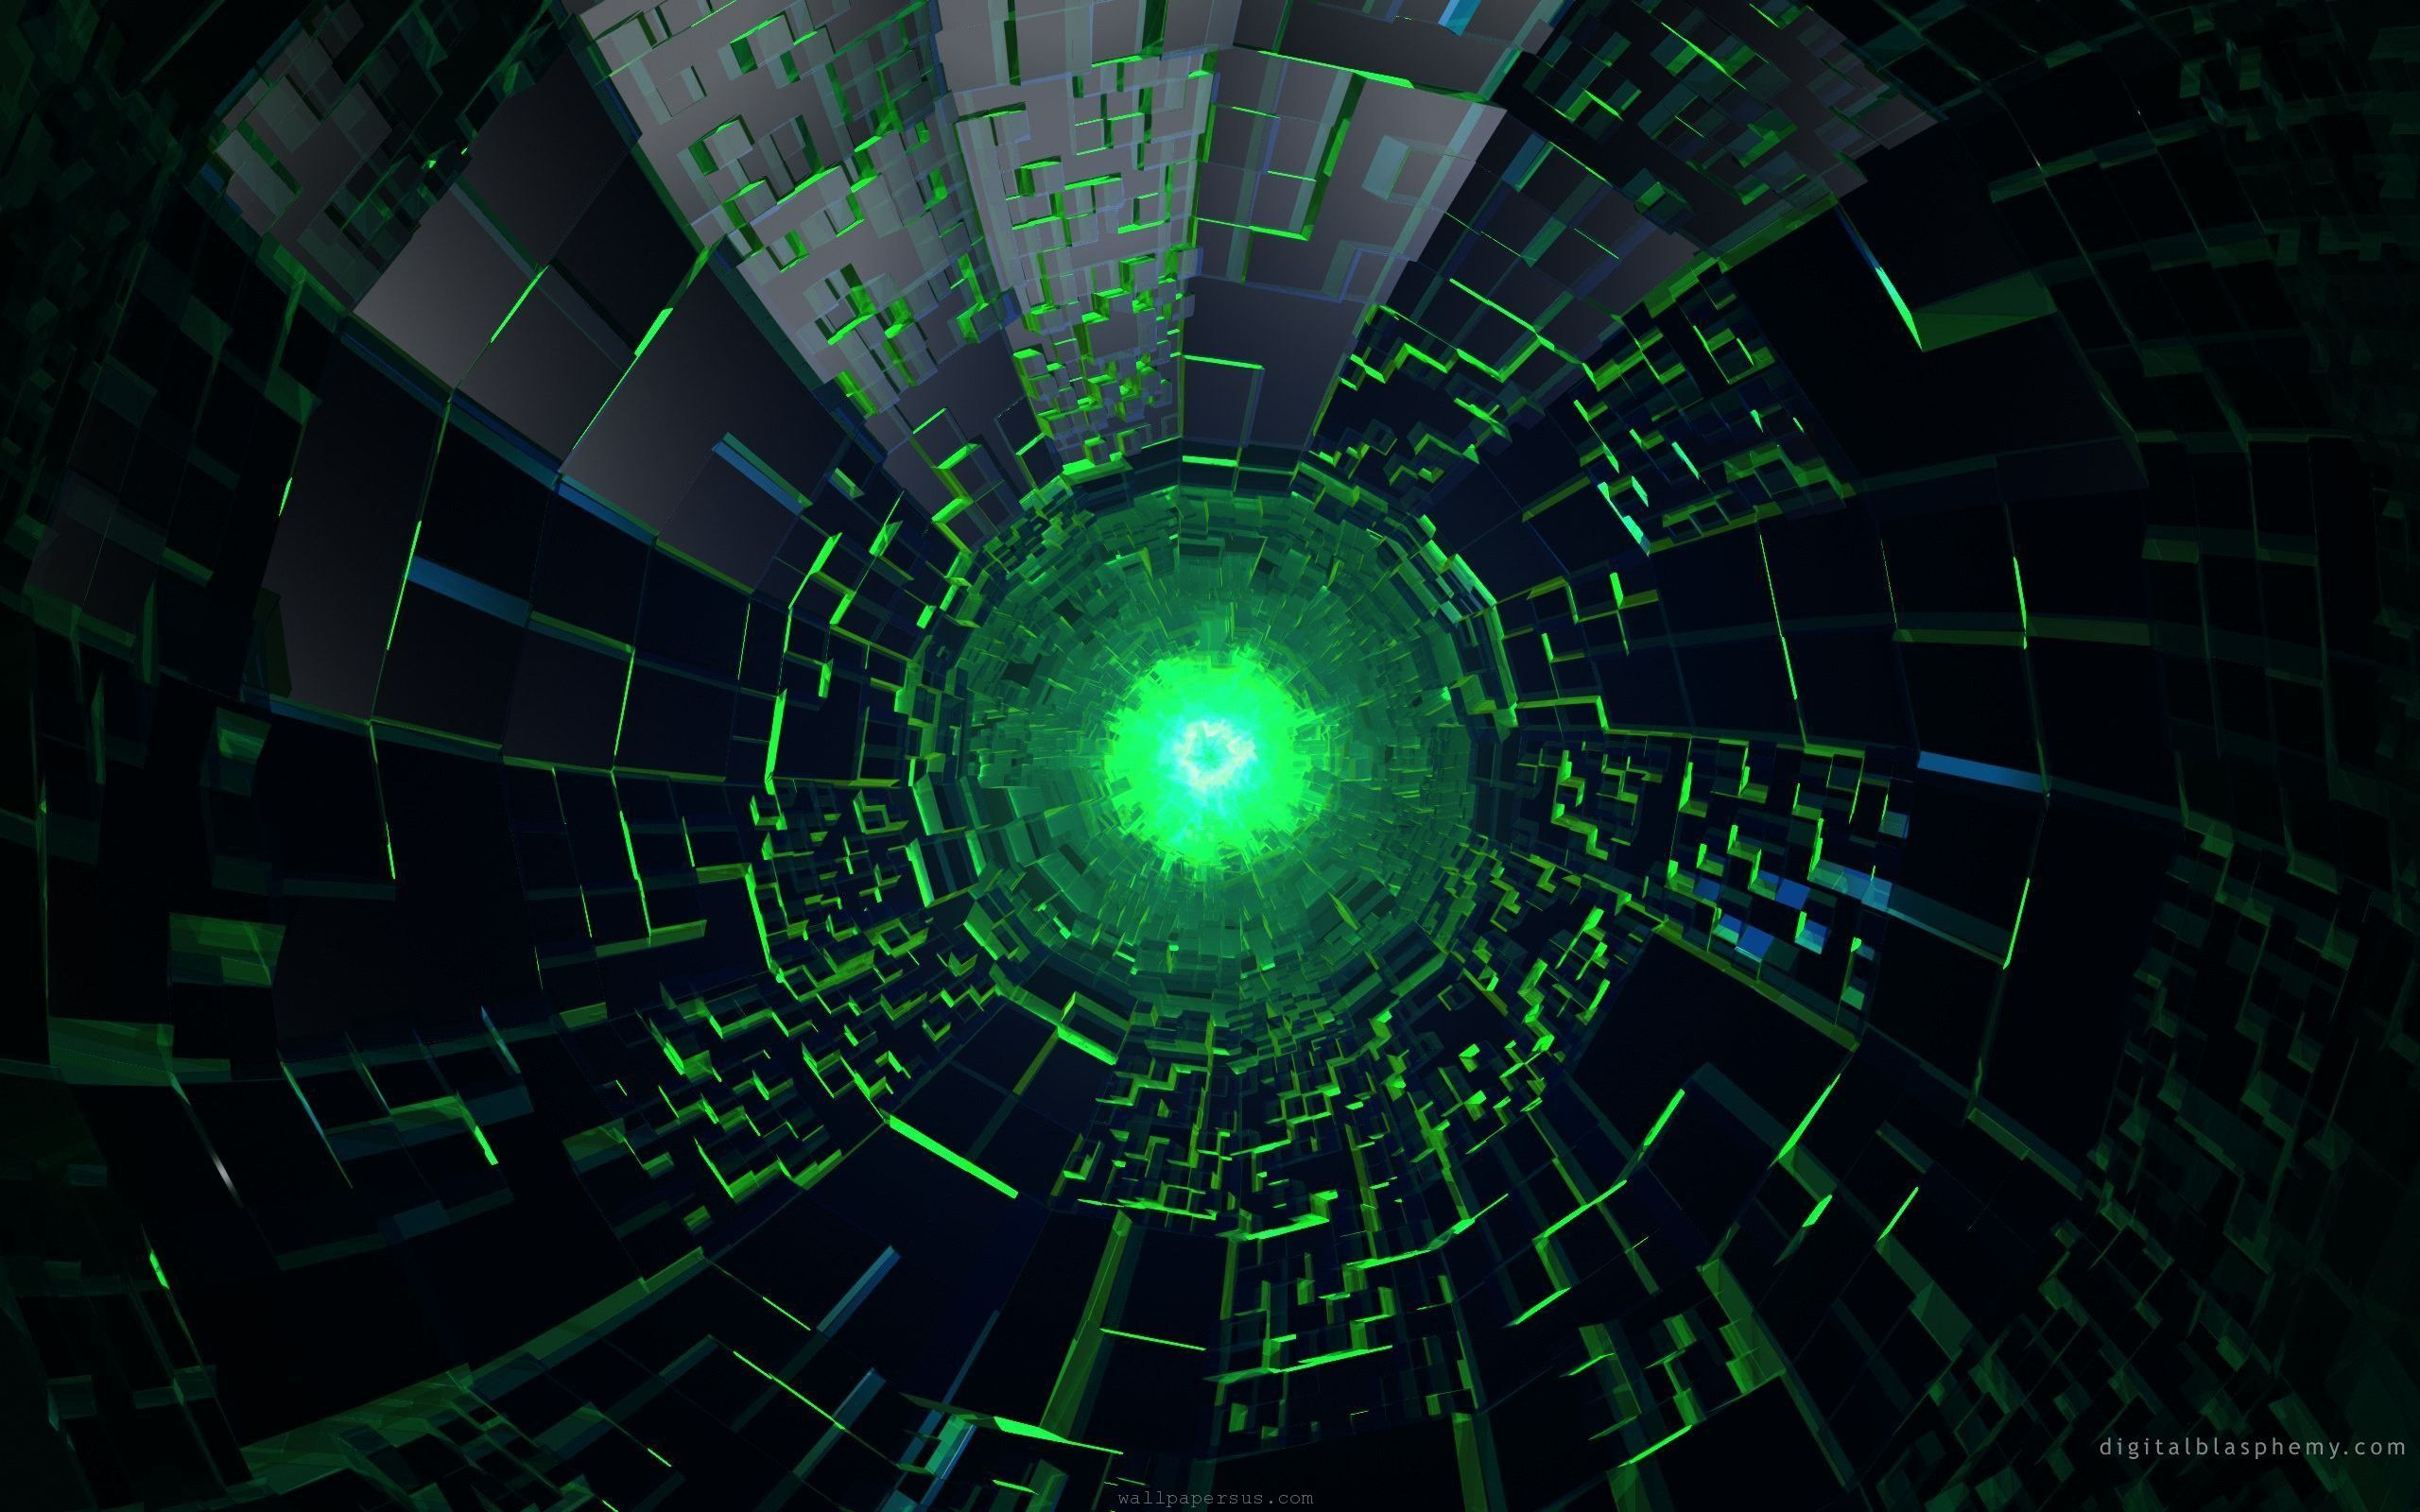 2334_3d_abstract (jpeg image, 2560 × 1600 pixels) - scaled (50